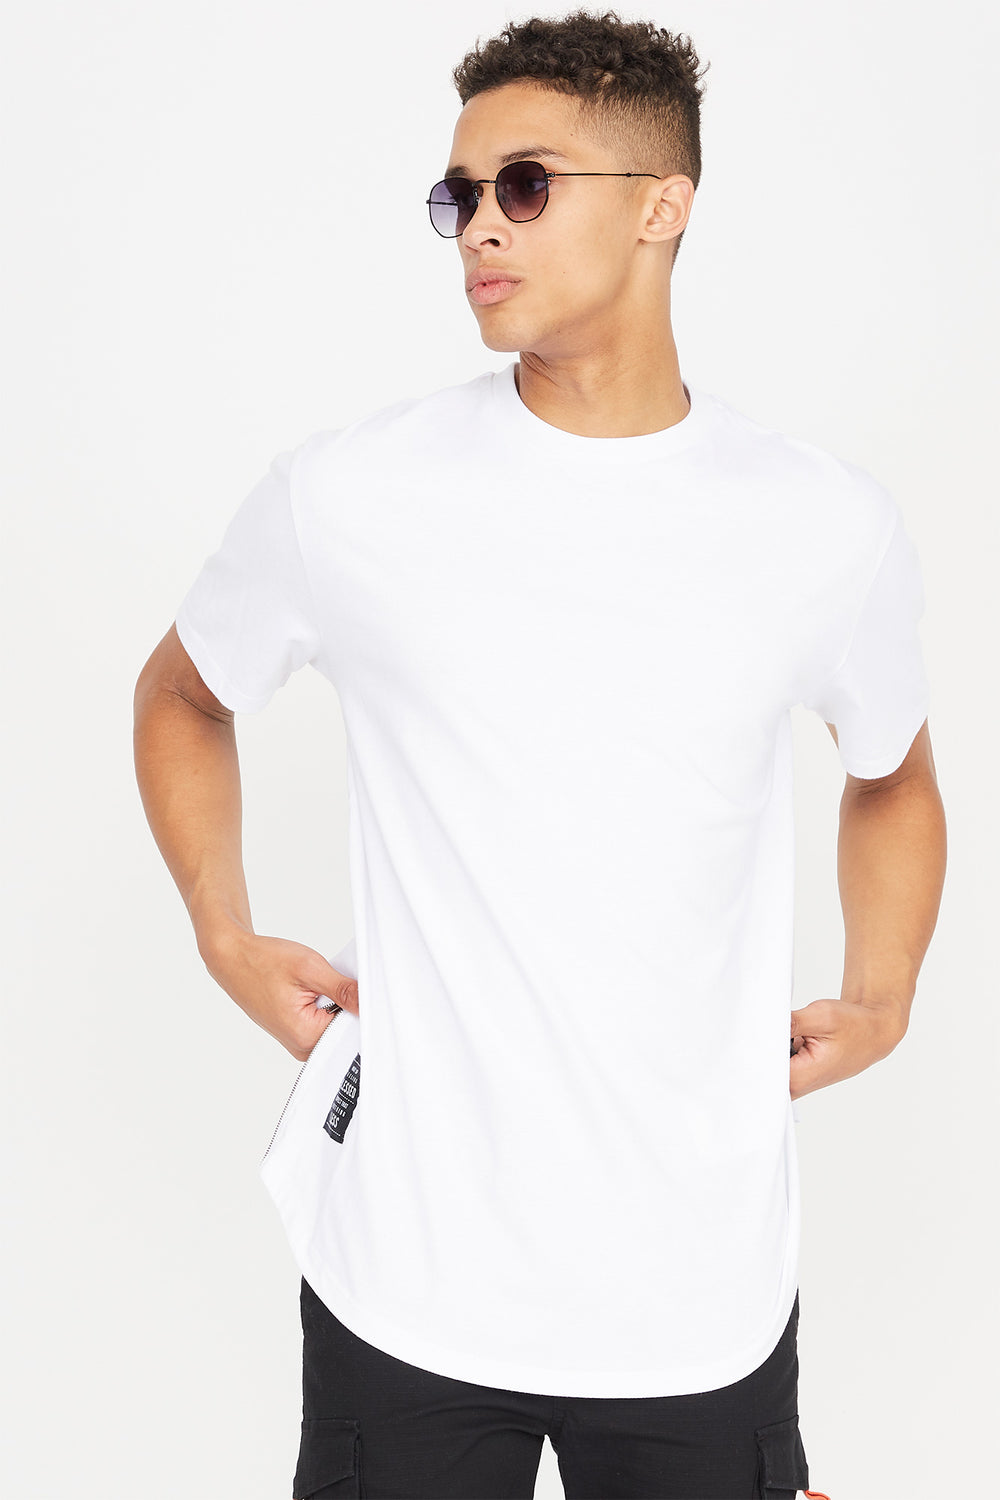 Camiseta Gráfica Enorme con Bolsillo Lateral Blessed Blanco